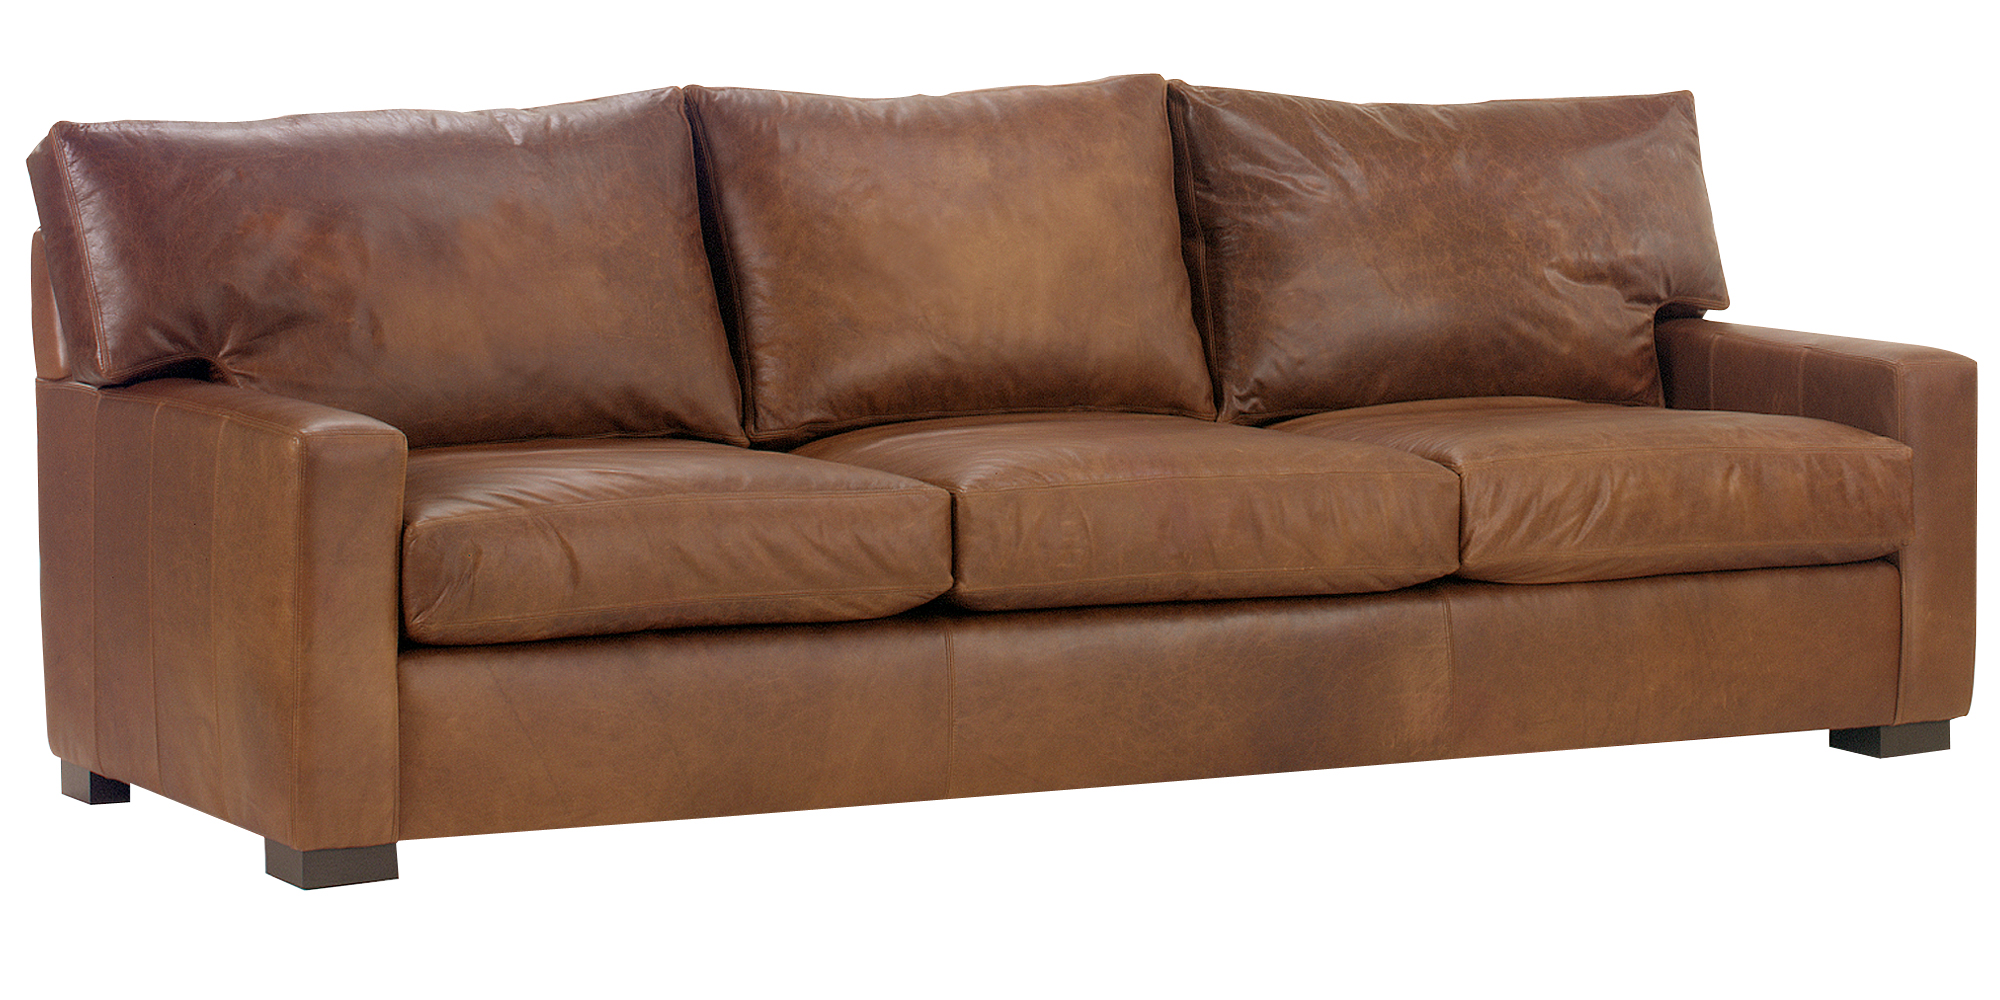 tufted club sofa dfs sofas londonderry leather chesterfield